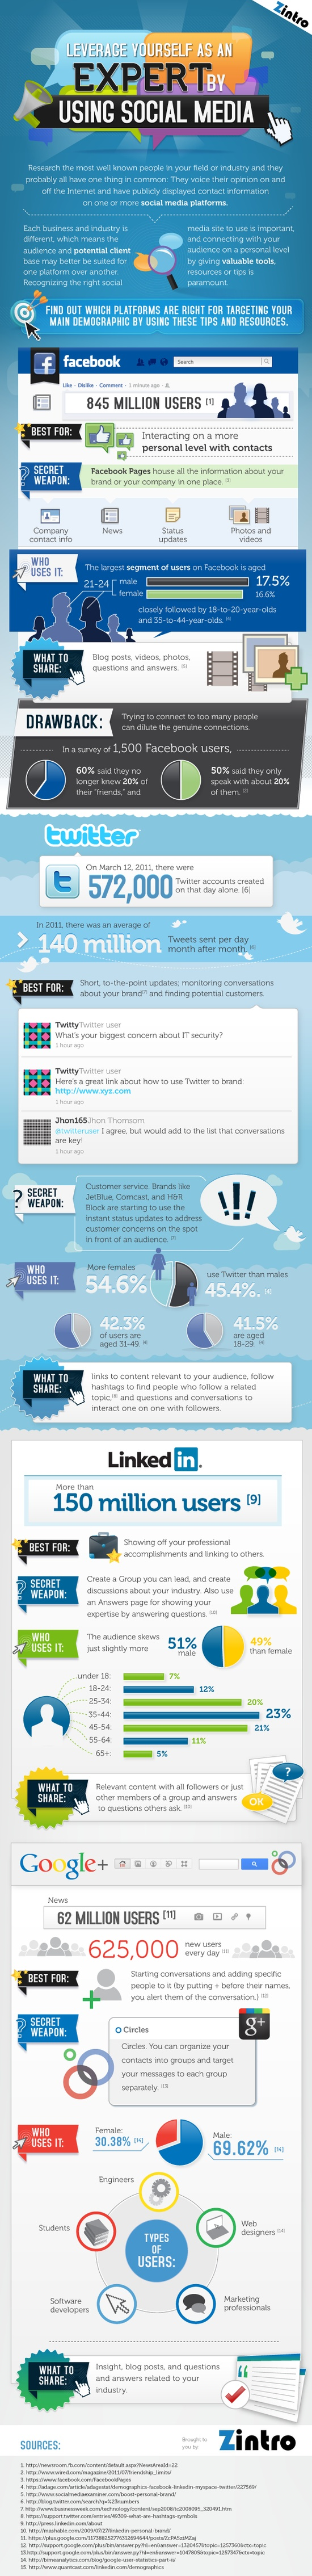 infographic-how-to-brand-yourself-an-expert-on-social-media